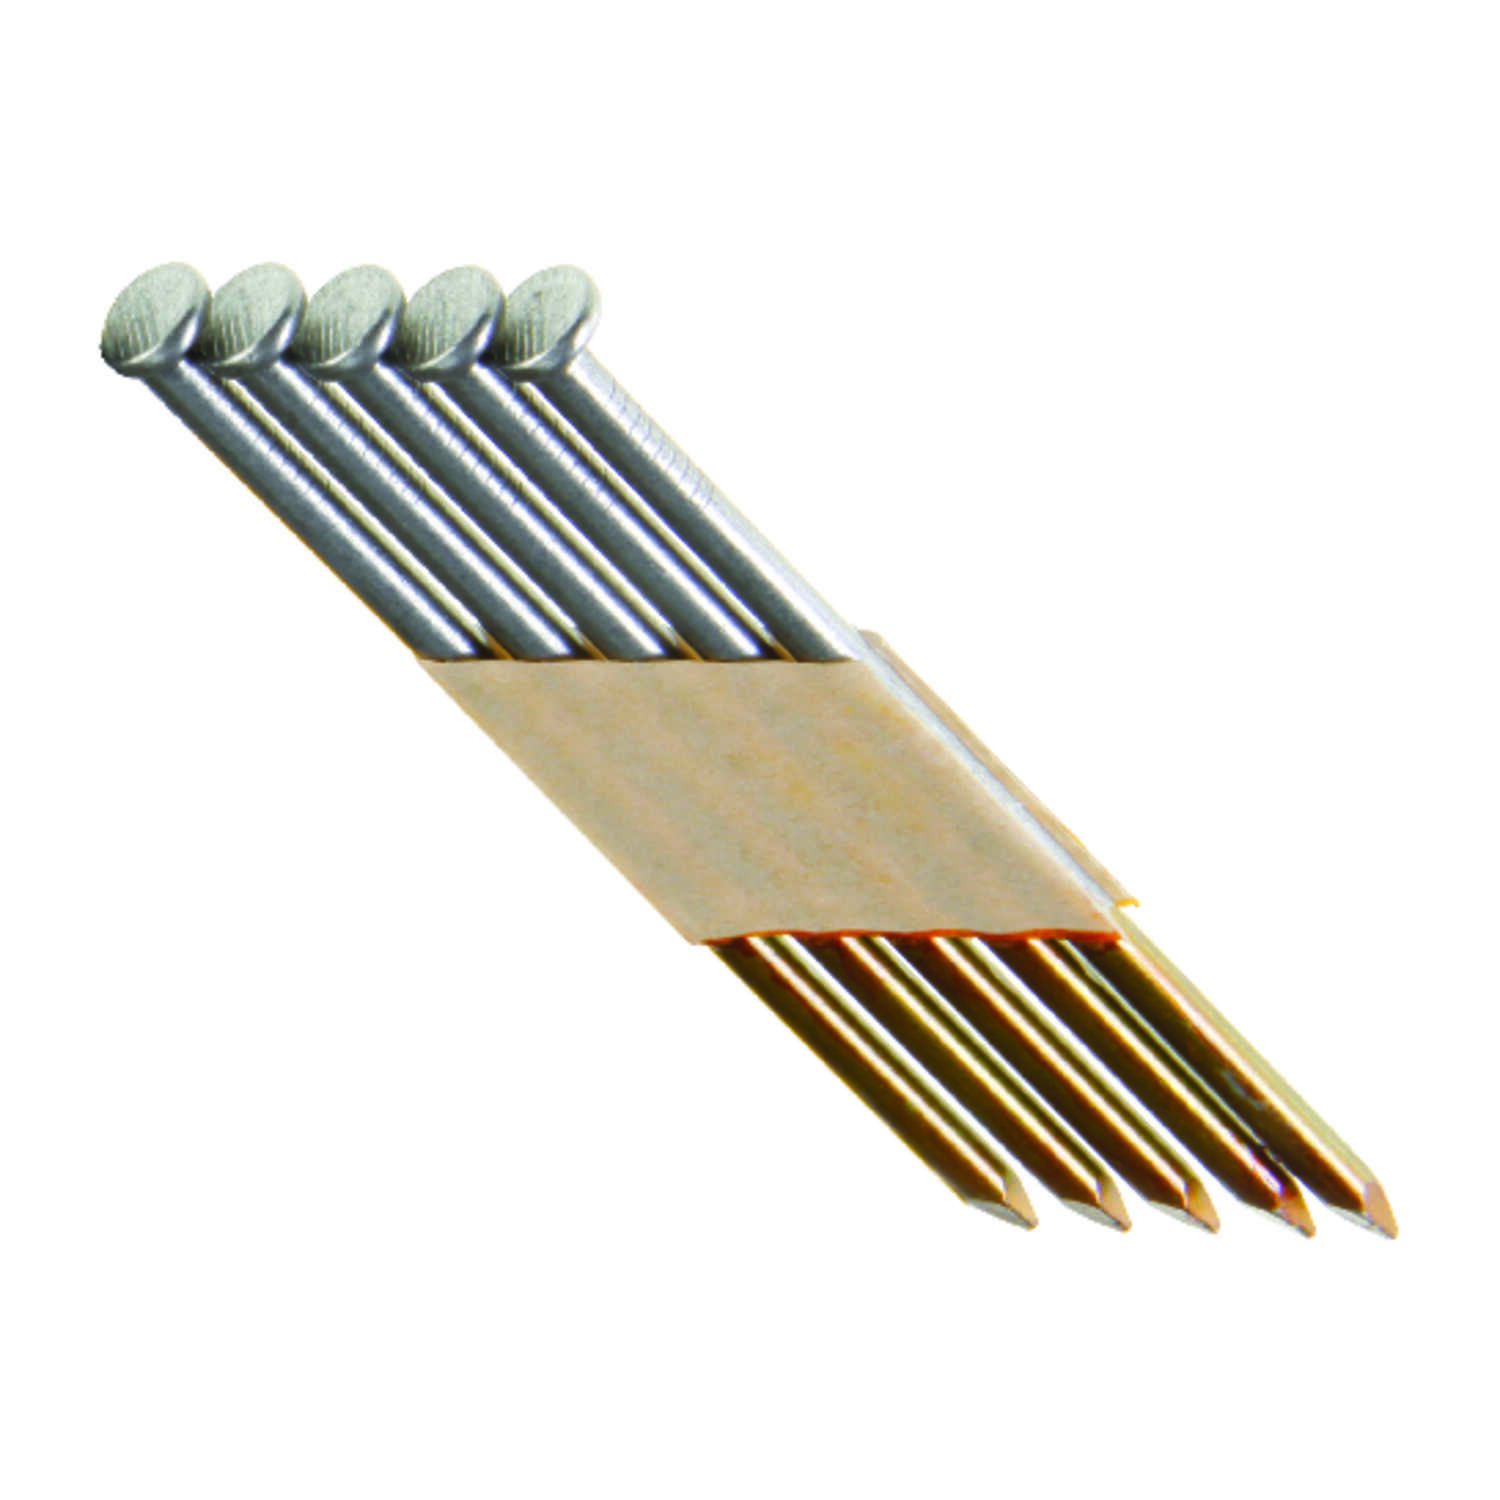 Grip-Rite  30 deg. 10 Ga. Smooth Shank  Angled Strip  Framing Nails  3-1/4 in. L x 0.13 in. Dia. 100